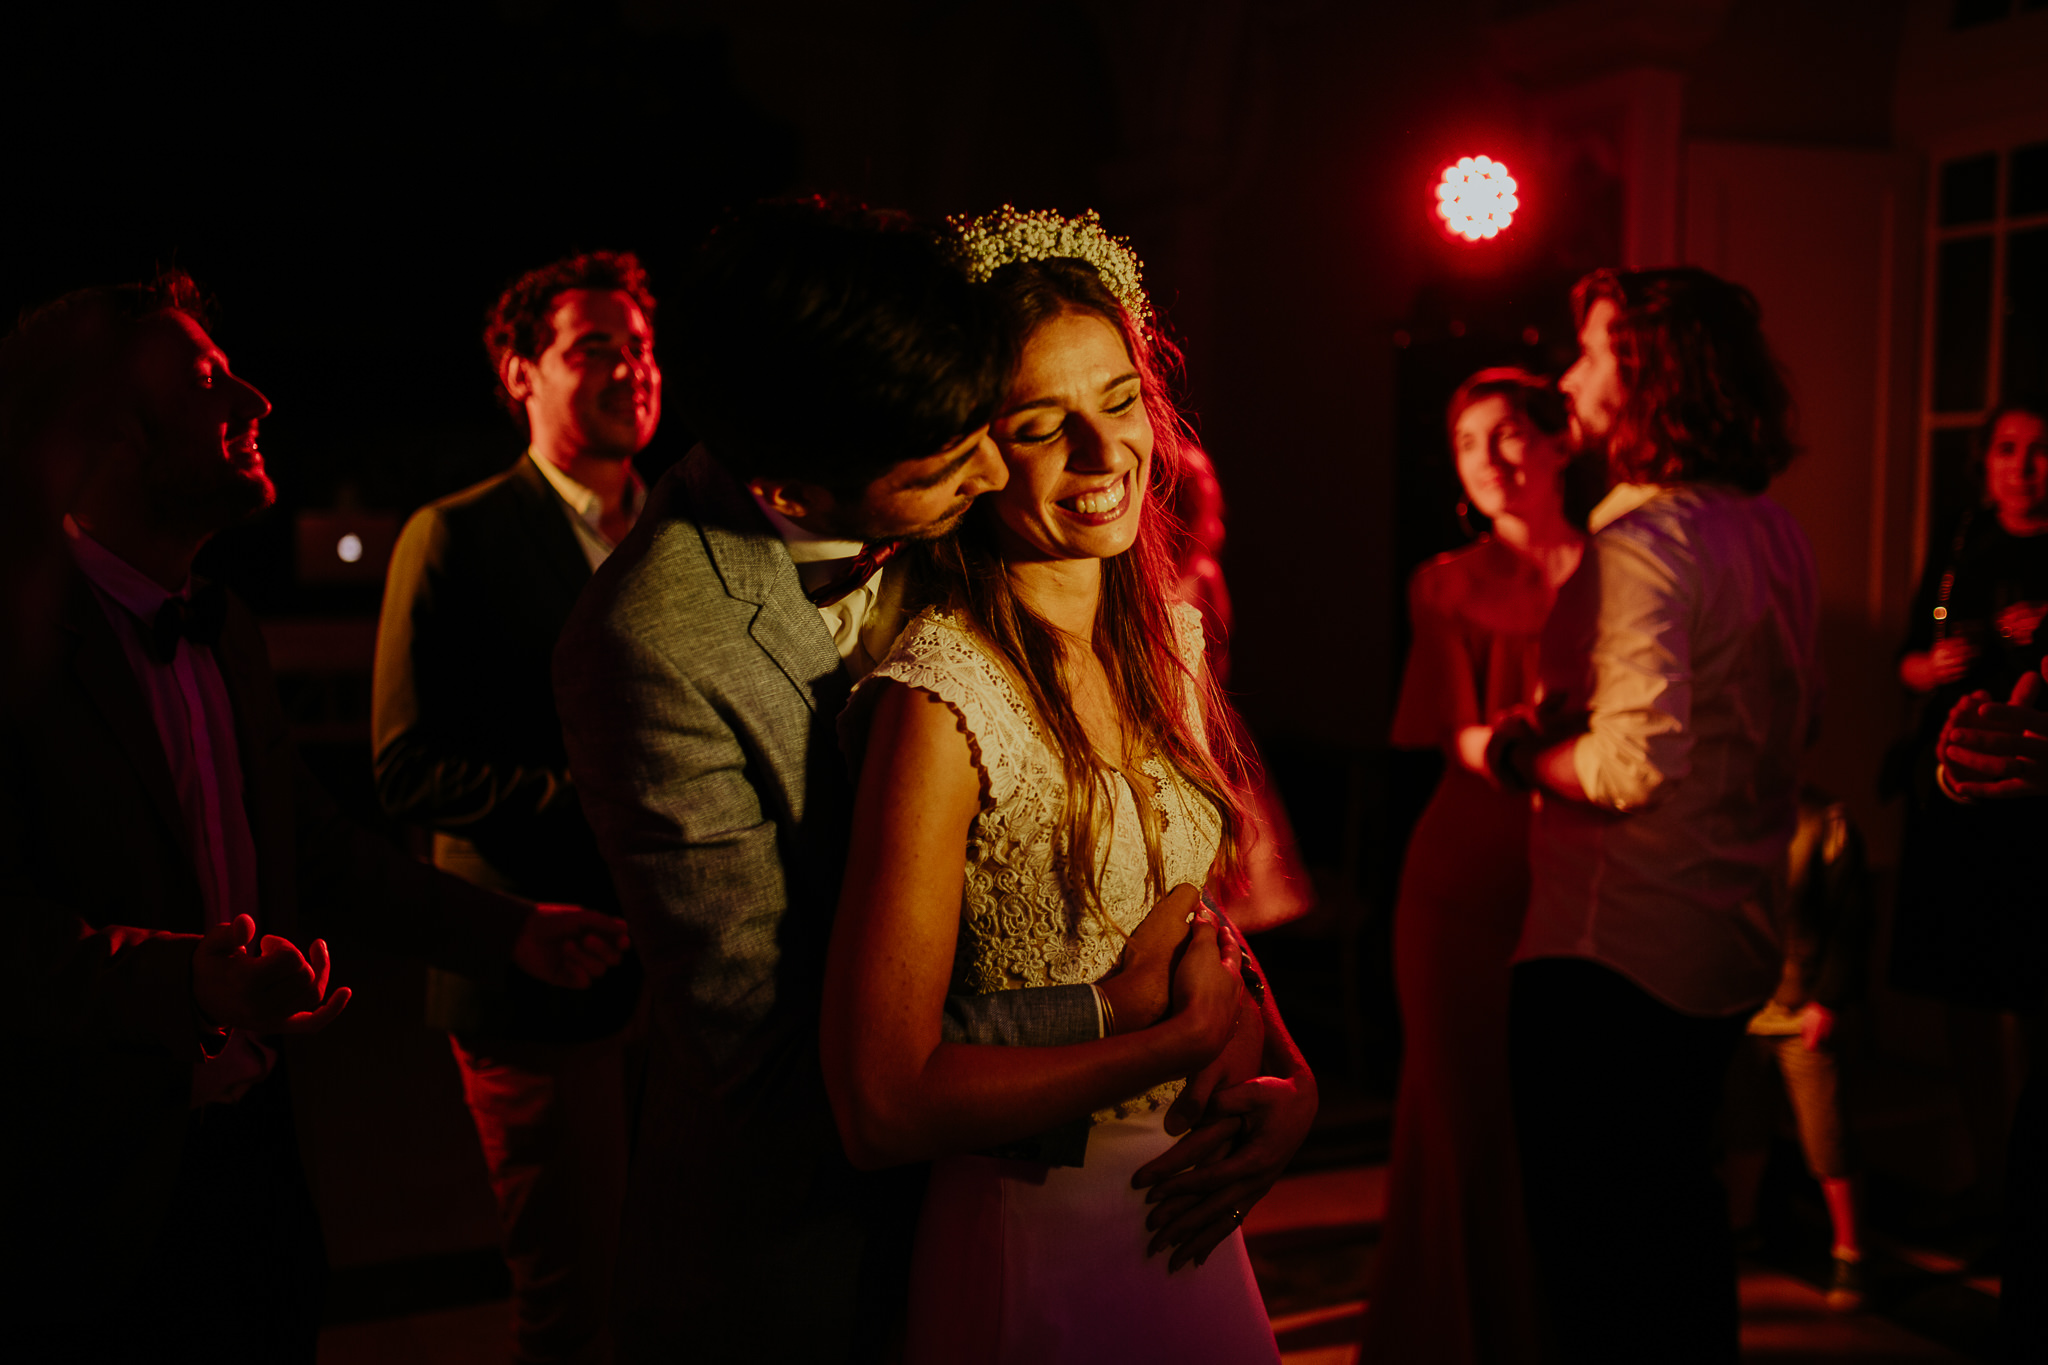 romina_thomas_destination_wedding_photography_fotografia_de_casamento_lisbon_sintra_penha_longa_resort-66